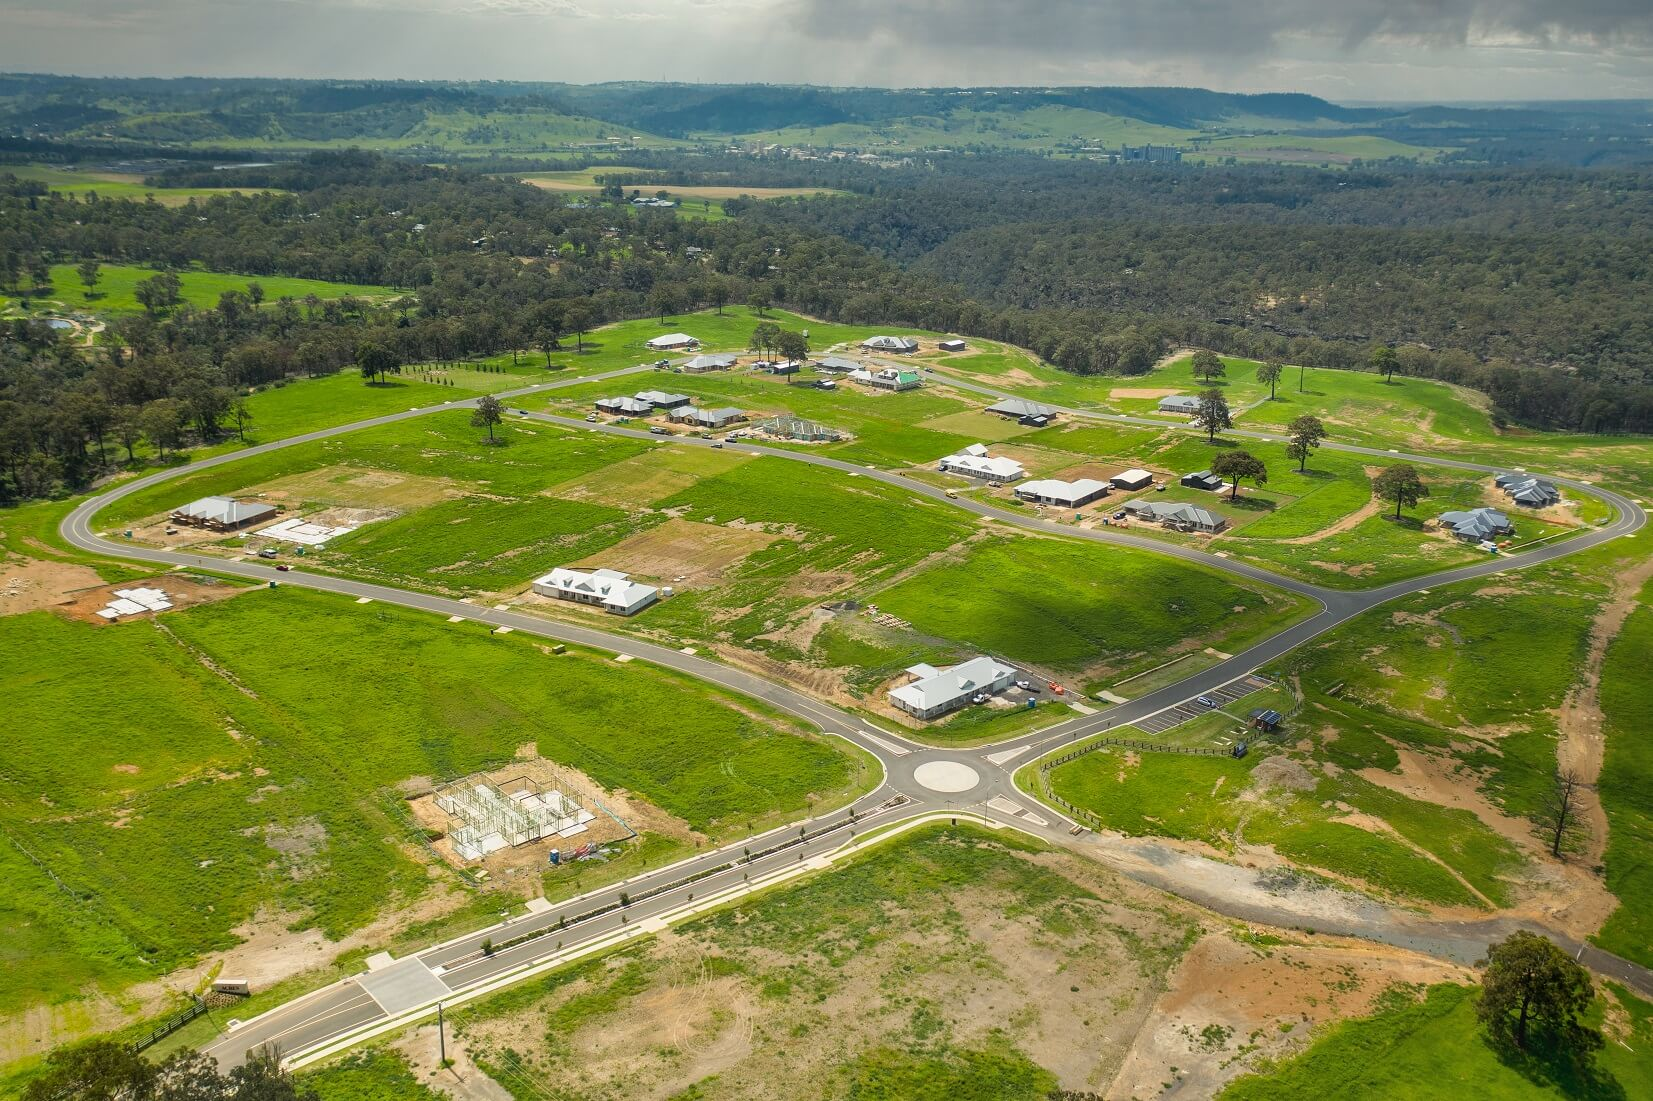 The Acres Aerial view